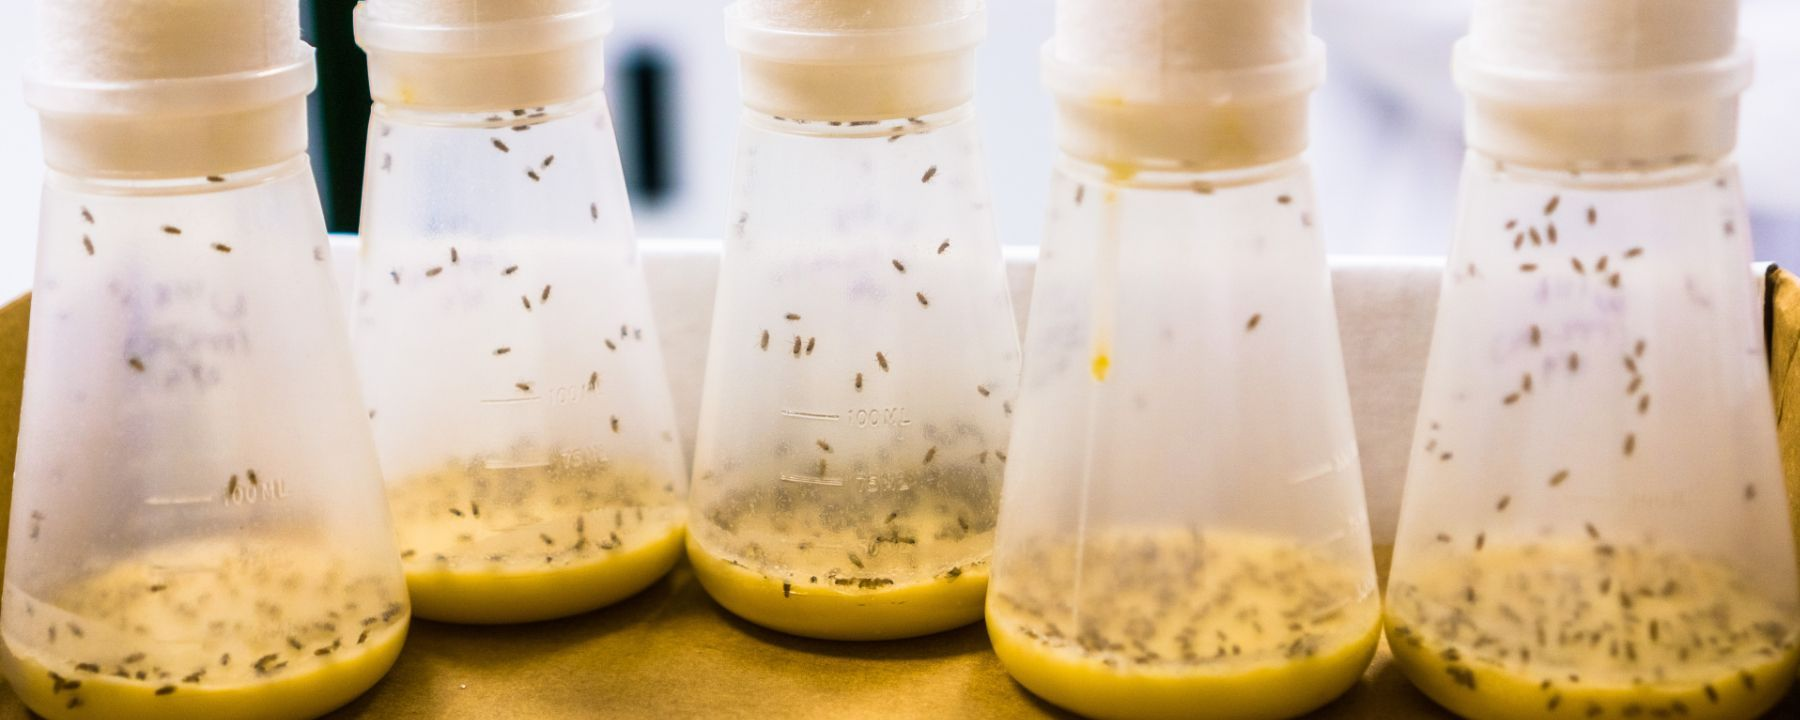 Insects Pass Antiviral Immunity to Offspring